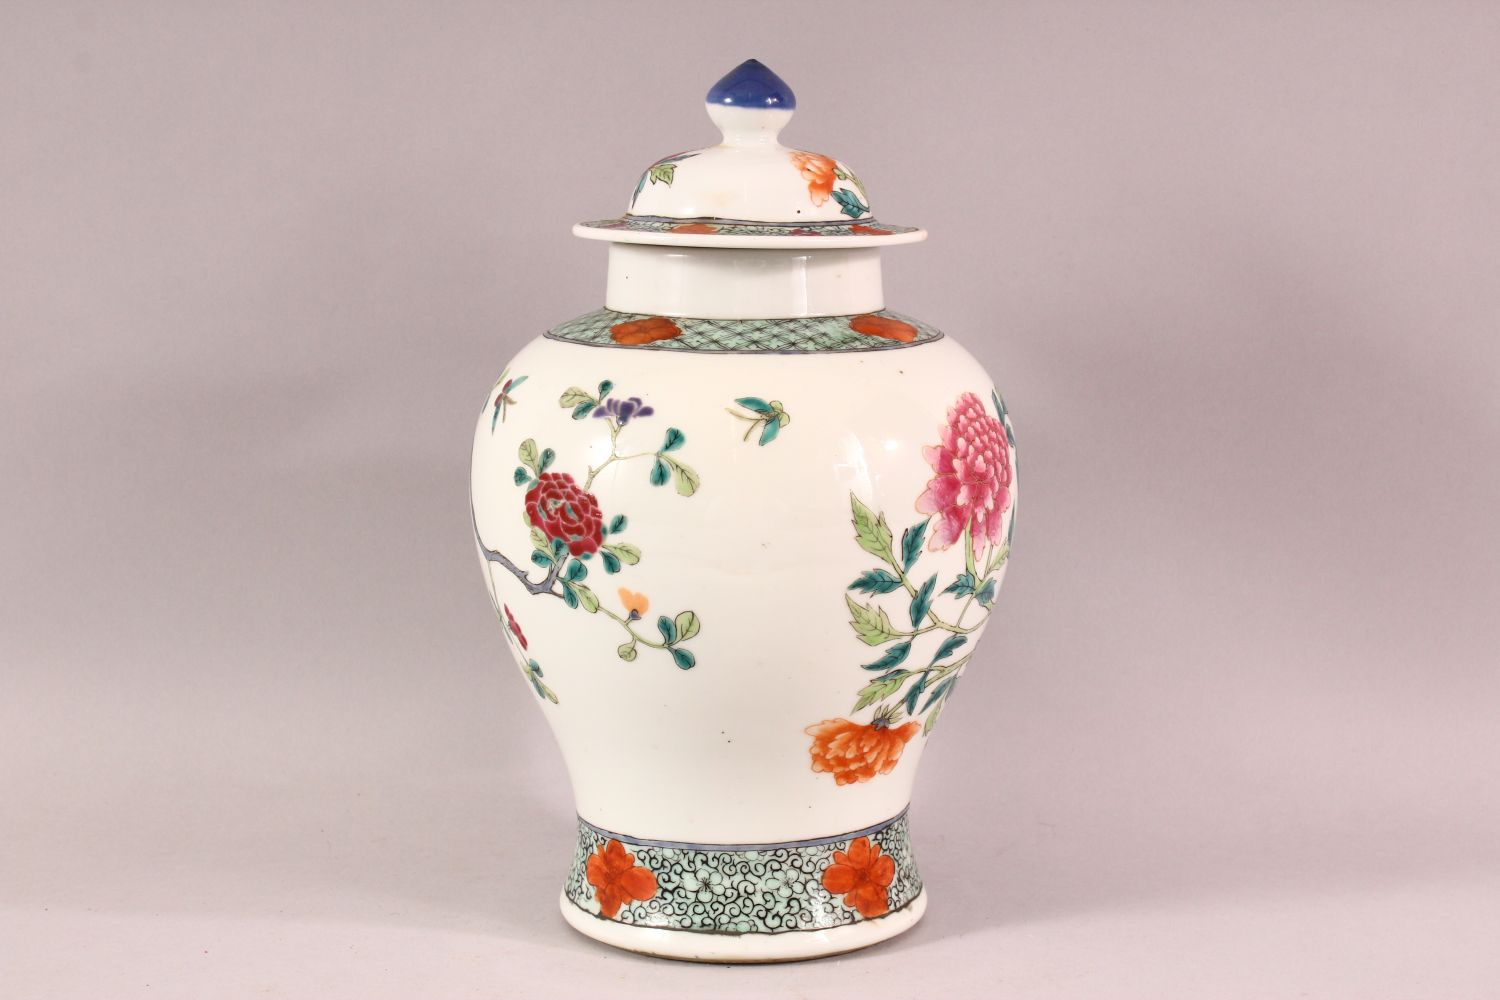 A CHINESE FAMILLE ROSE PORCELAIN JAR & COVER - decorated with scenes of native floral landscape - Image 3 of 8